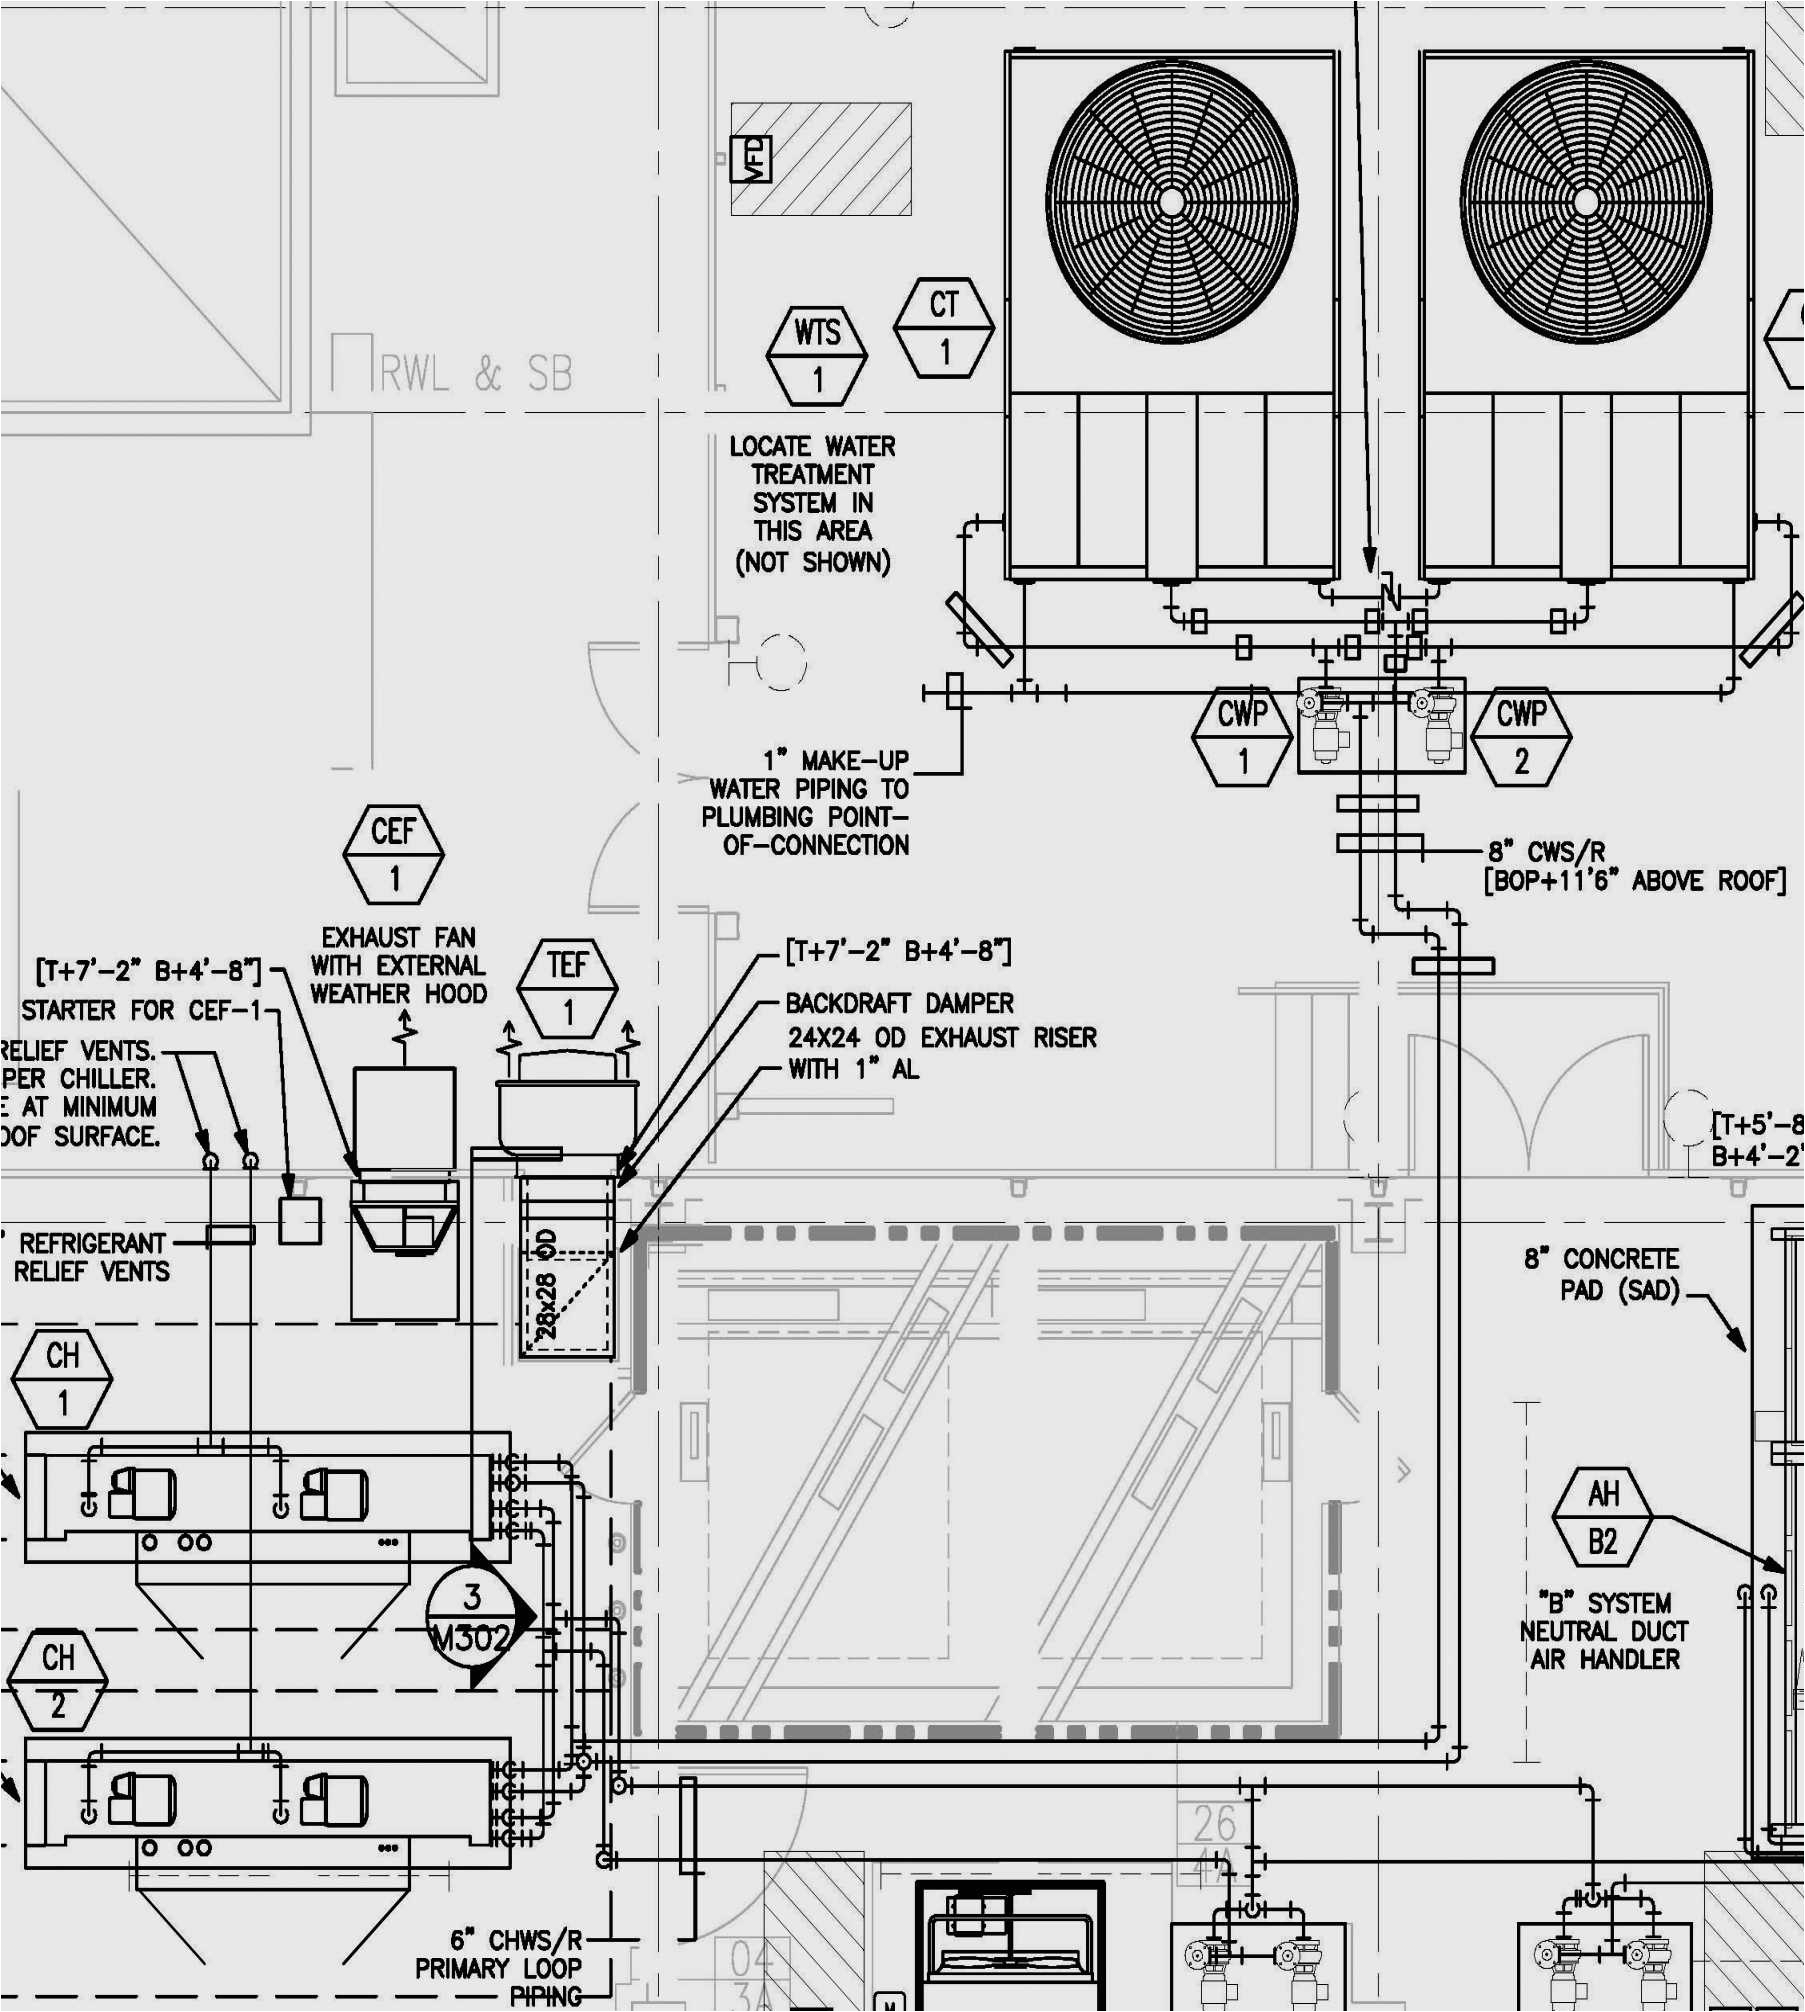 Wiring Diagram for A Starter solenoid Wireing 208 Motor Starter Diagram Wiring Diagram Centre